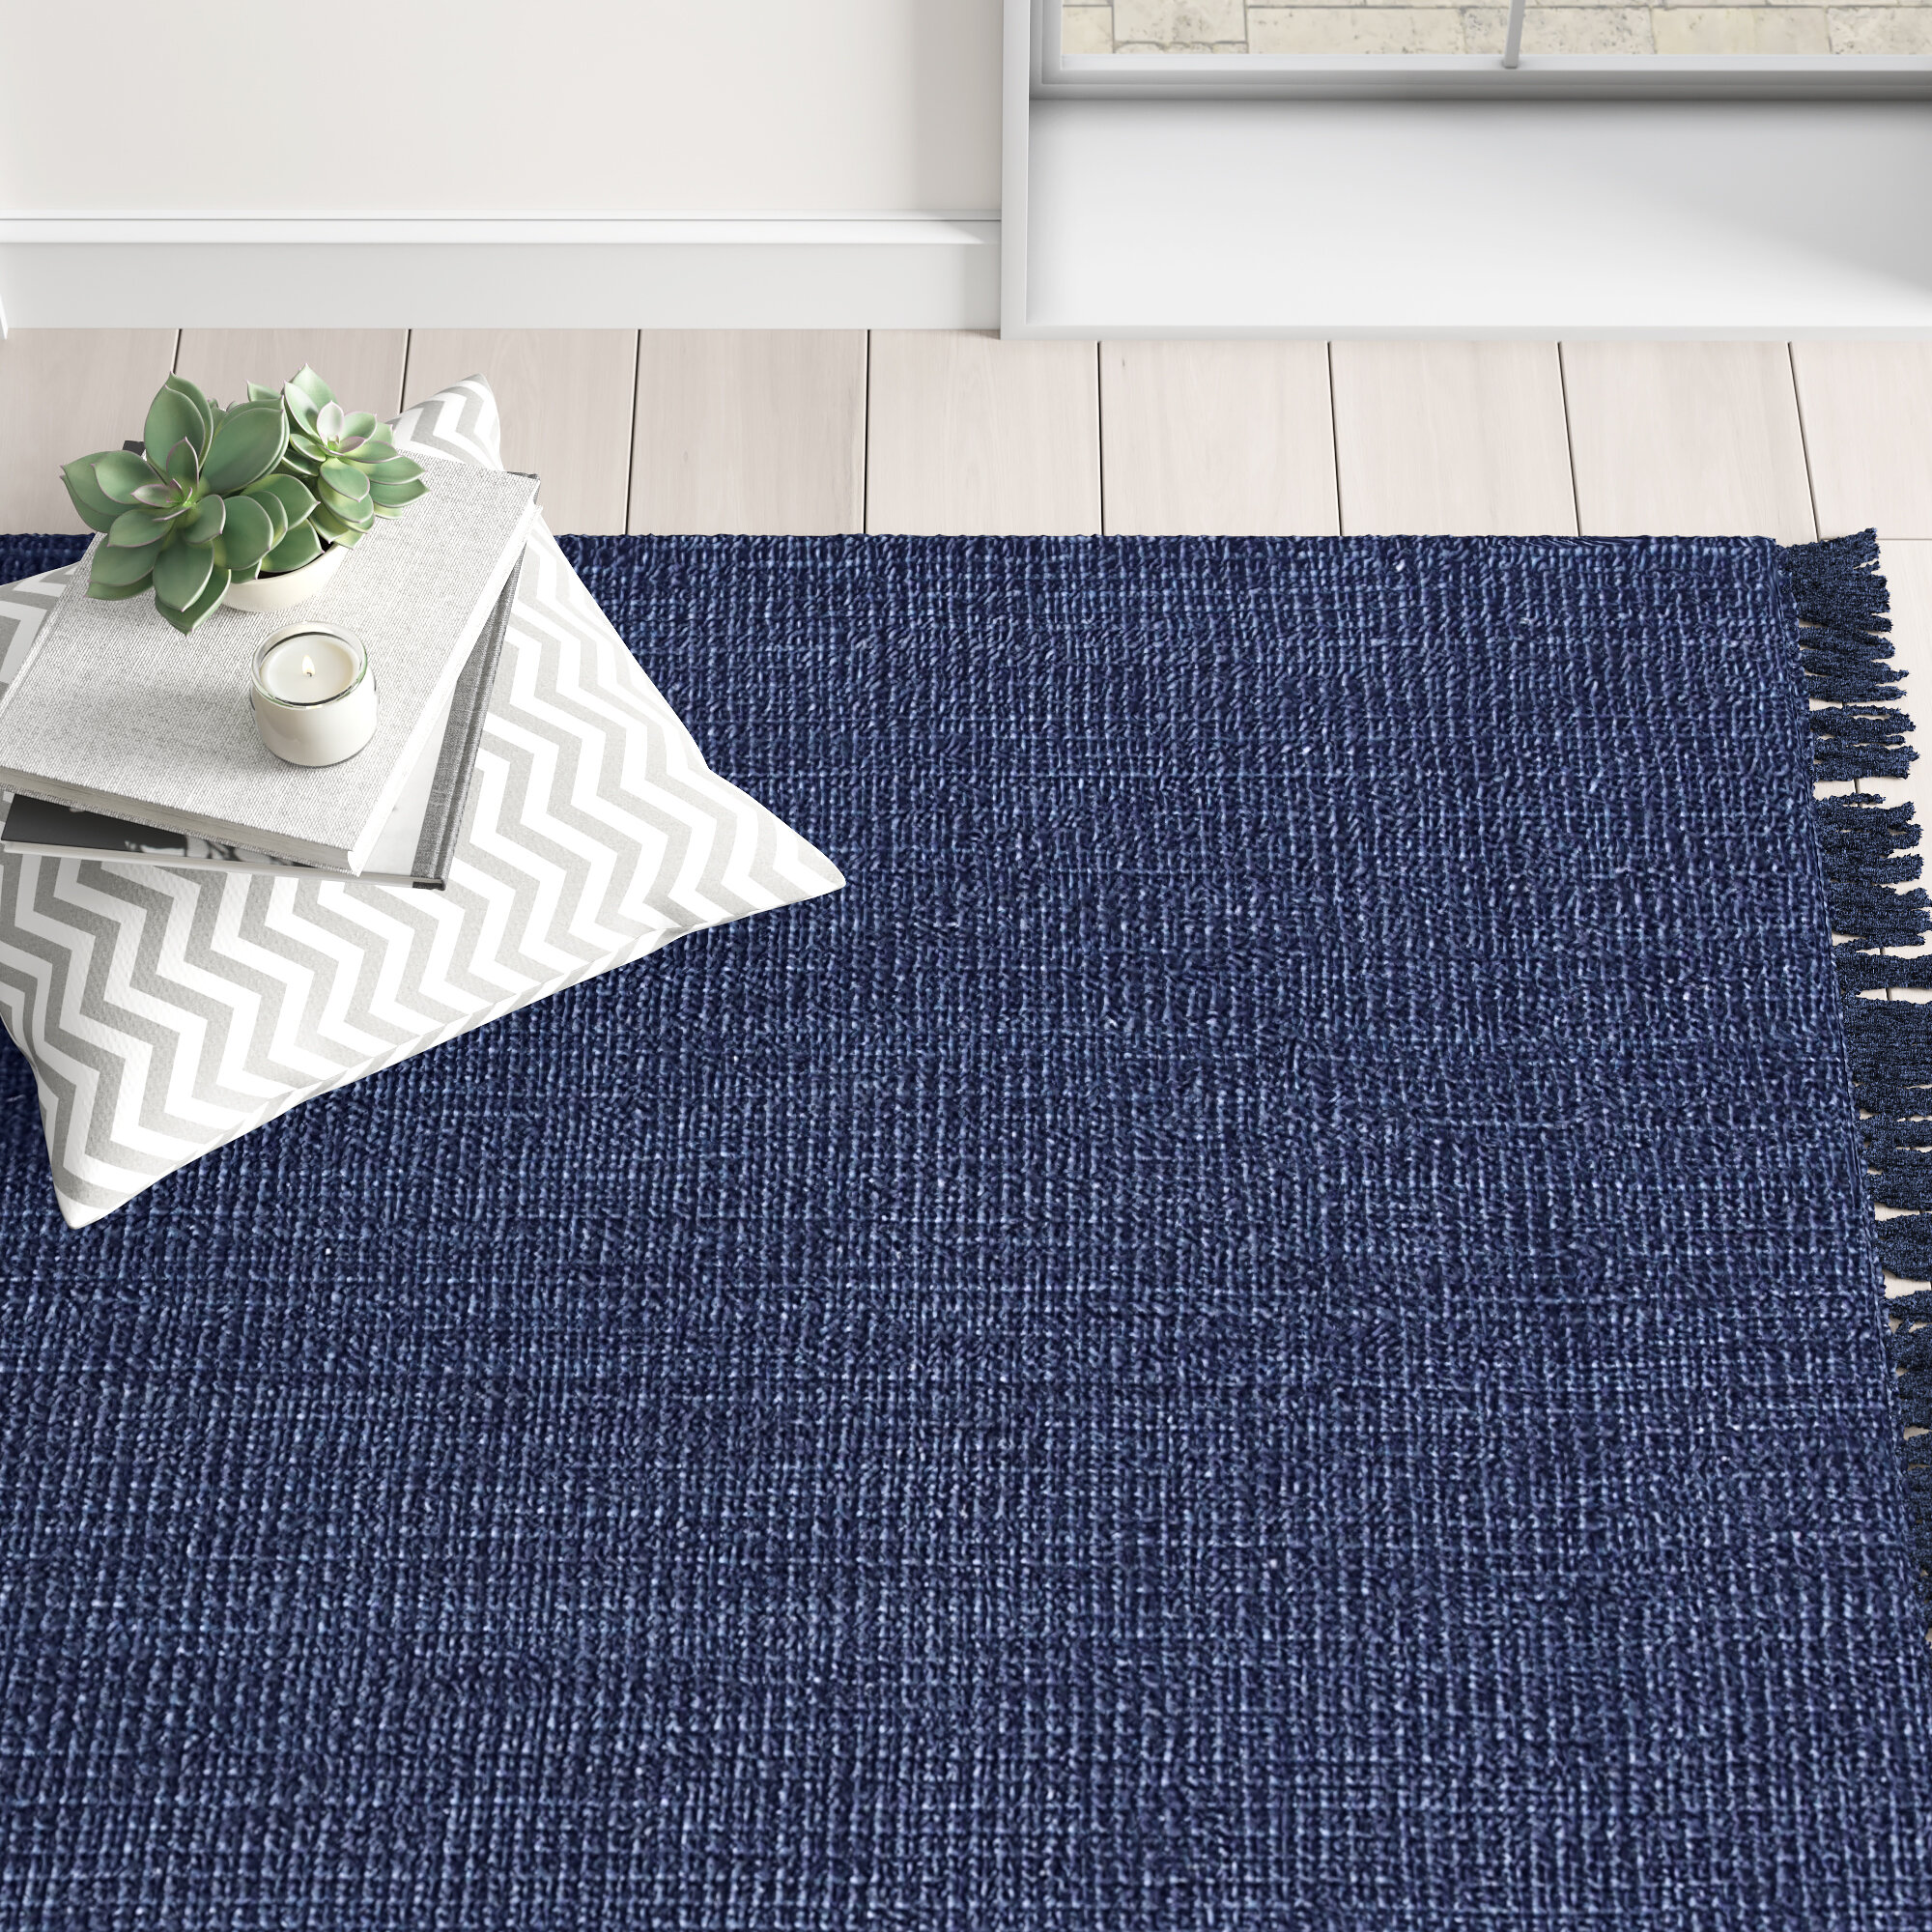 Charleigh Handmade Tufted Jute Navy Blue Area Rug Joss Main